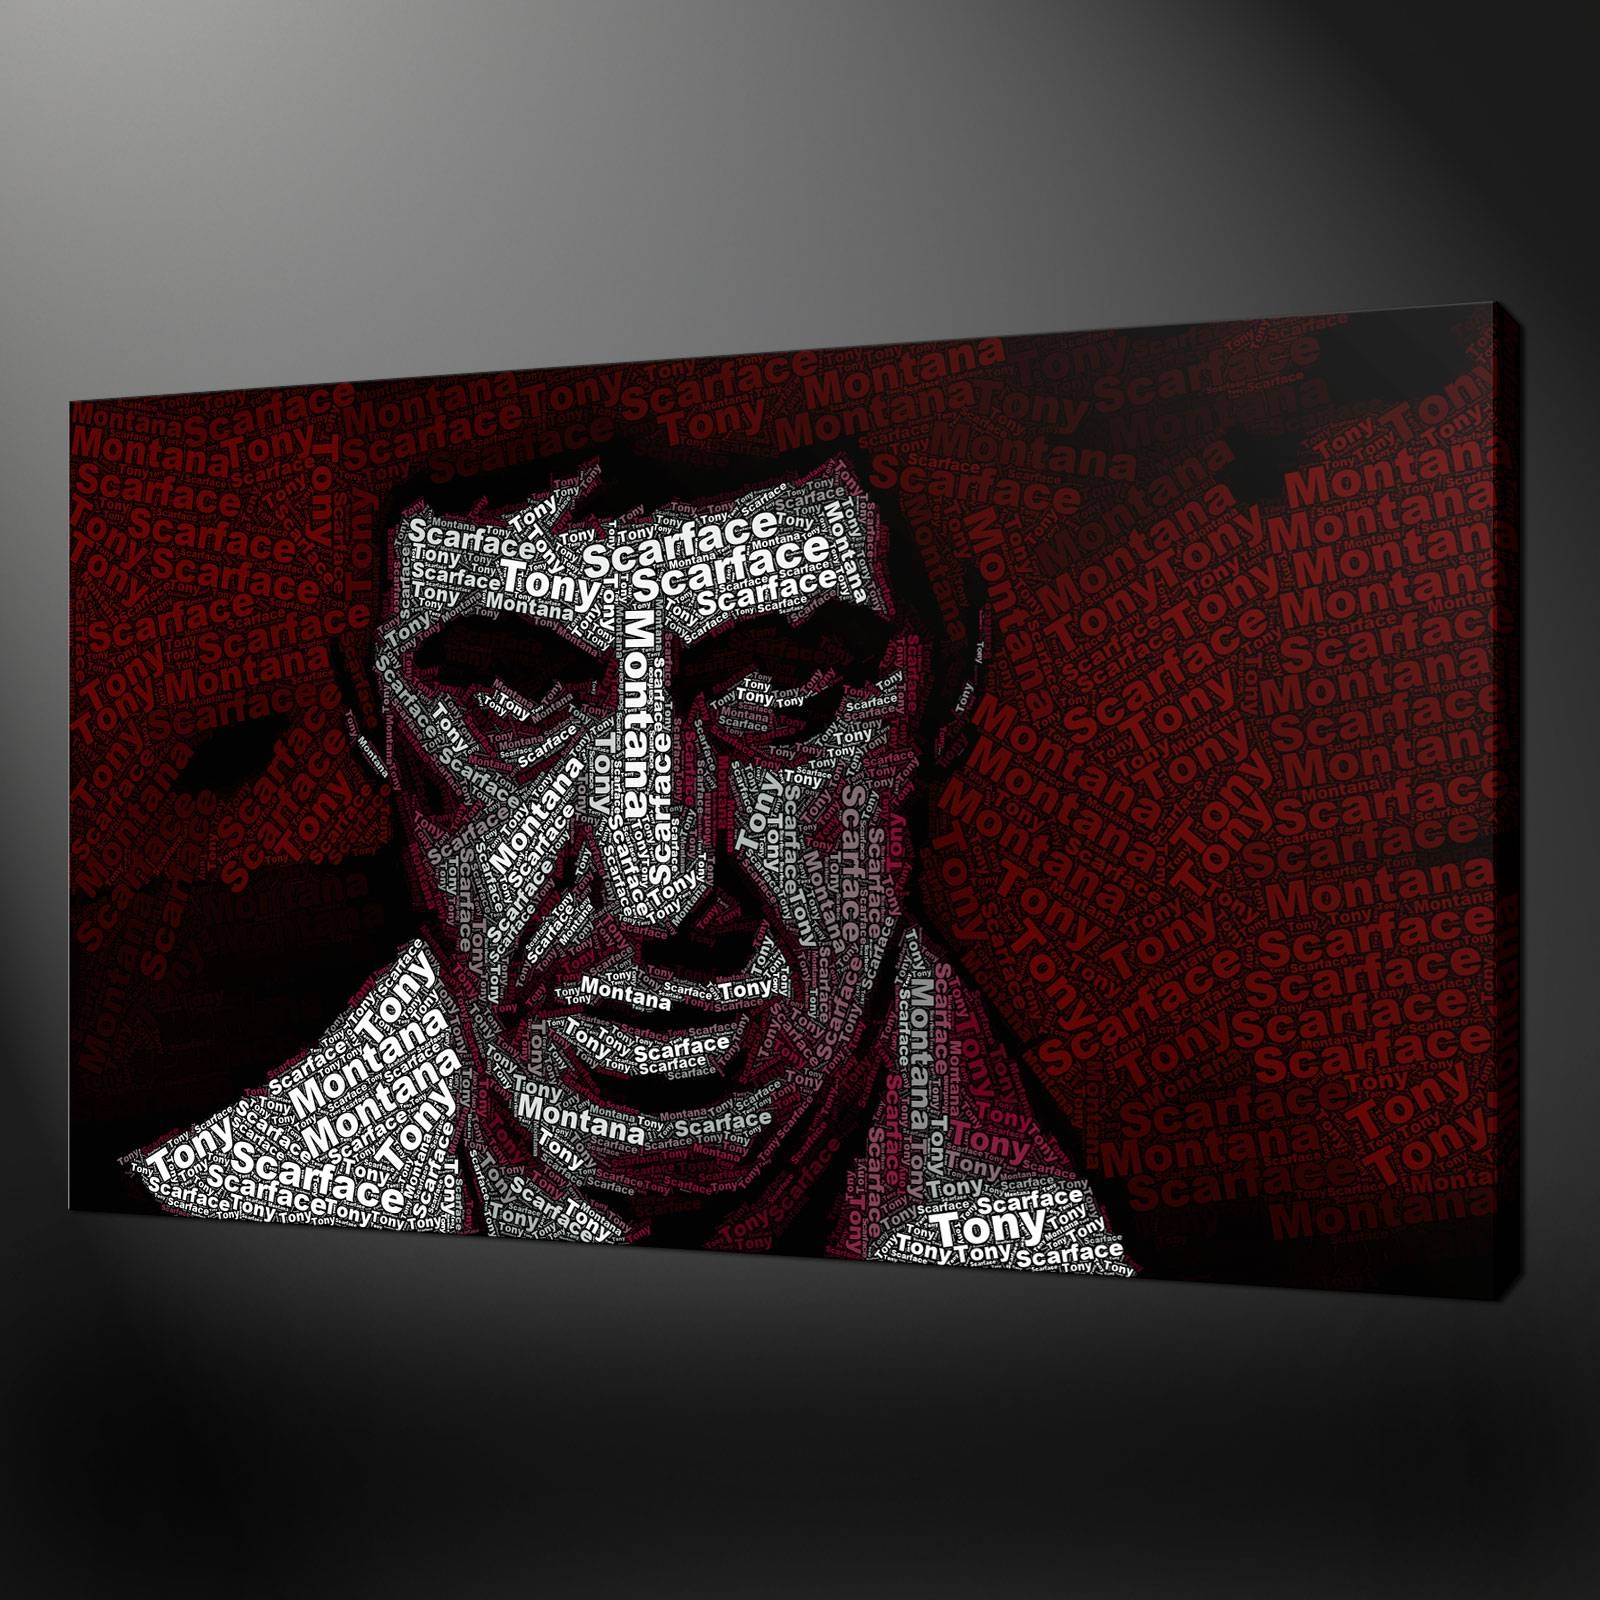 Tony Montana Scarface Typography Canvas Wall Art Print Picture For Most Up To Date Typography Canvas Wall Art (View 15 of 20)